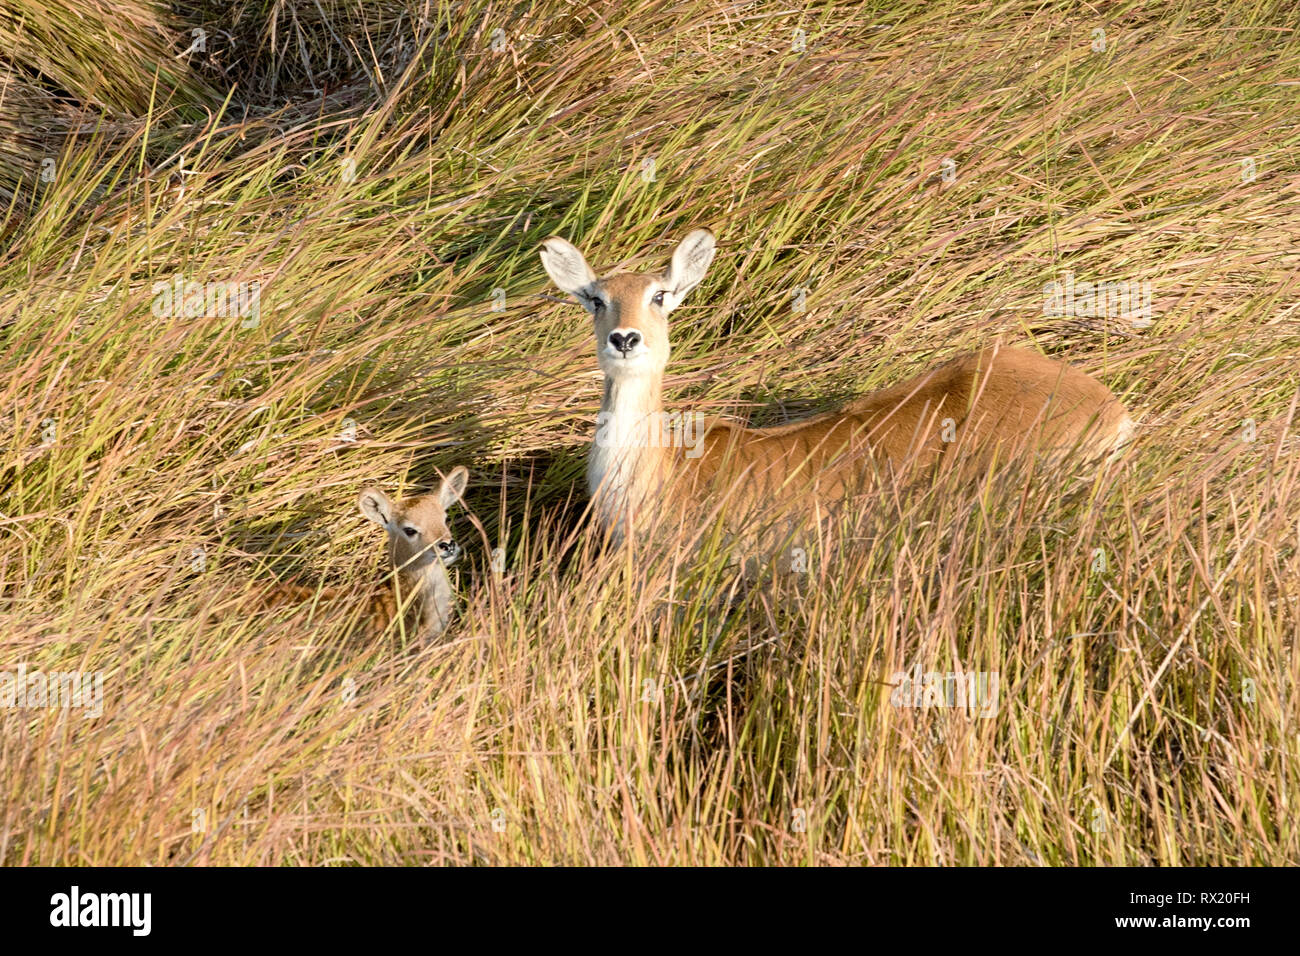 A red lechwe from the air in the Okavango Delta near chiefs island, Botswana. - Stock Image